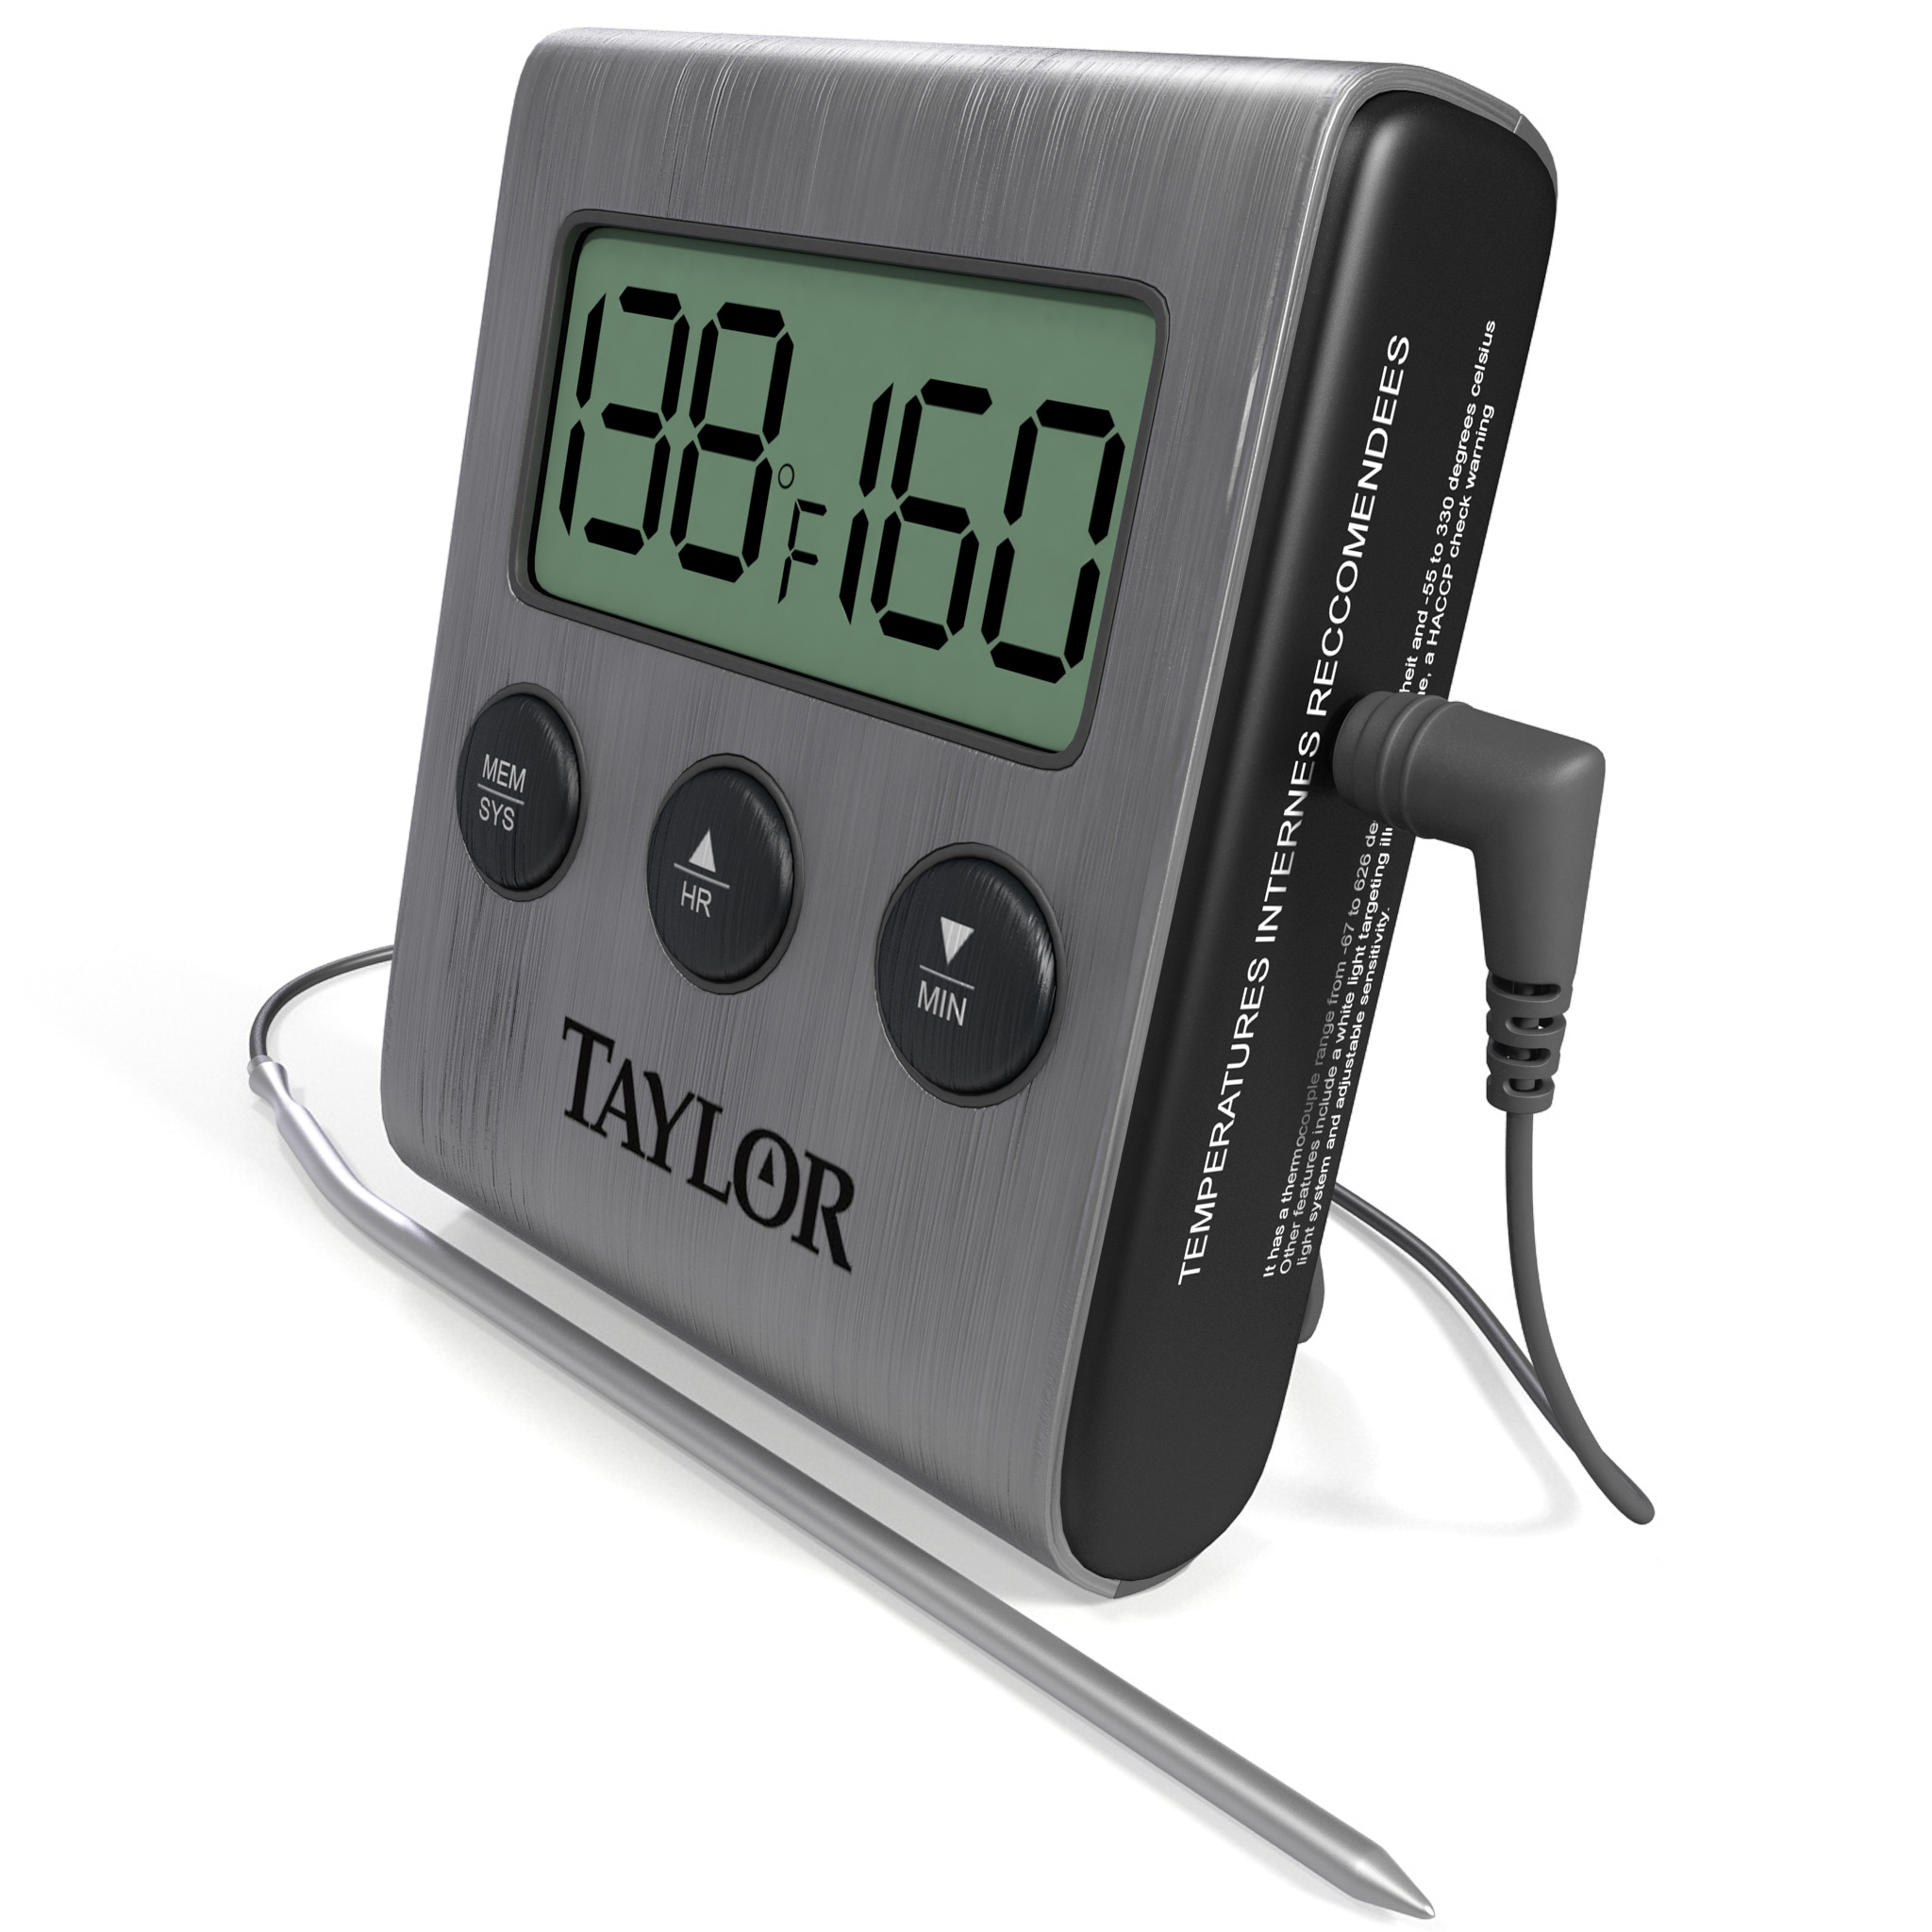 Digital Cooking Thermometer Taylor